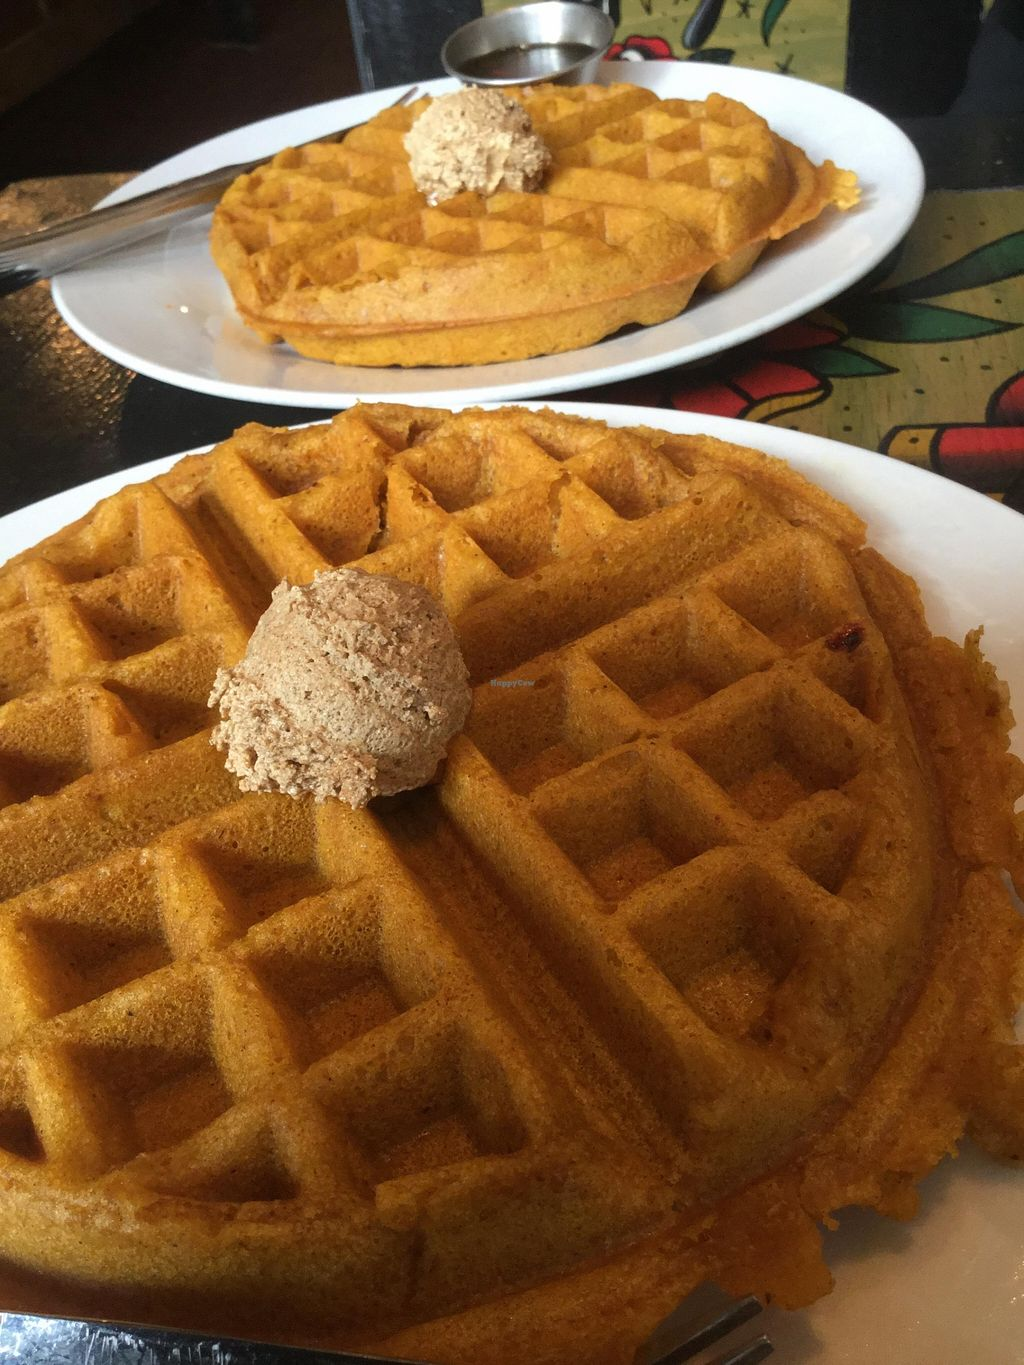 """Photo of Boots Bakery and Lounge  by <a href=""""/members/profile/J%20and%20J"""">J and J</a> <br/>Famous pumpkin waffles! Don't miss them! <br/> January 30, 2016  - <a href='/contact/abuse/image/33634/134237'>Report</a>"""